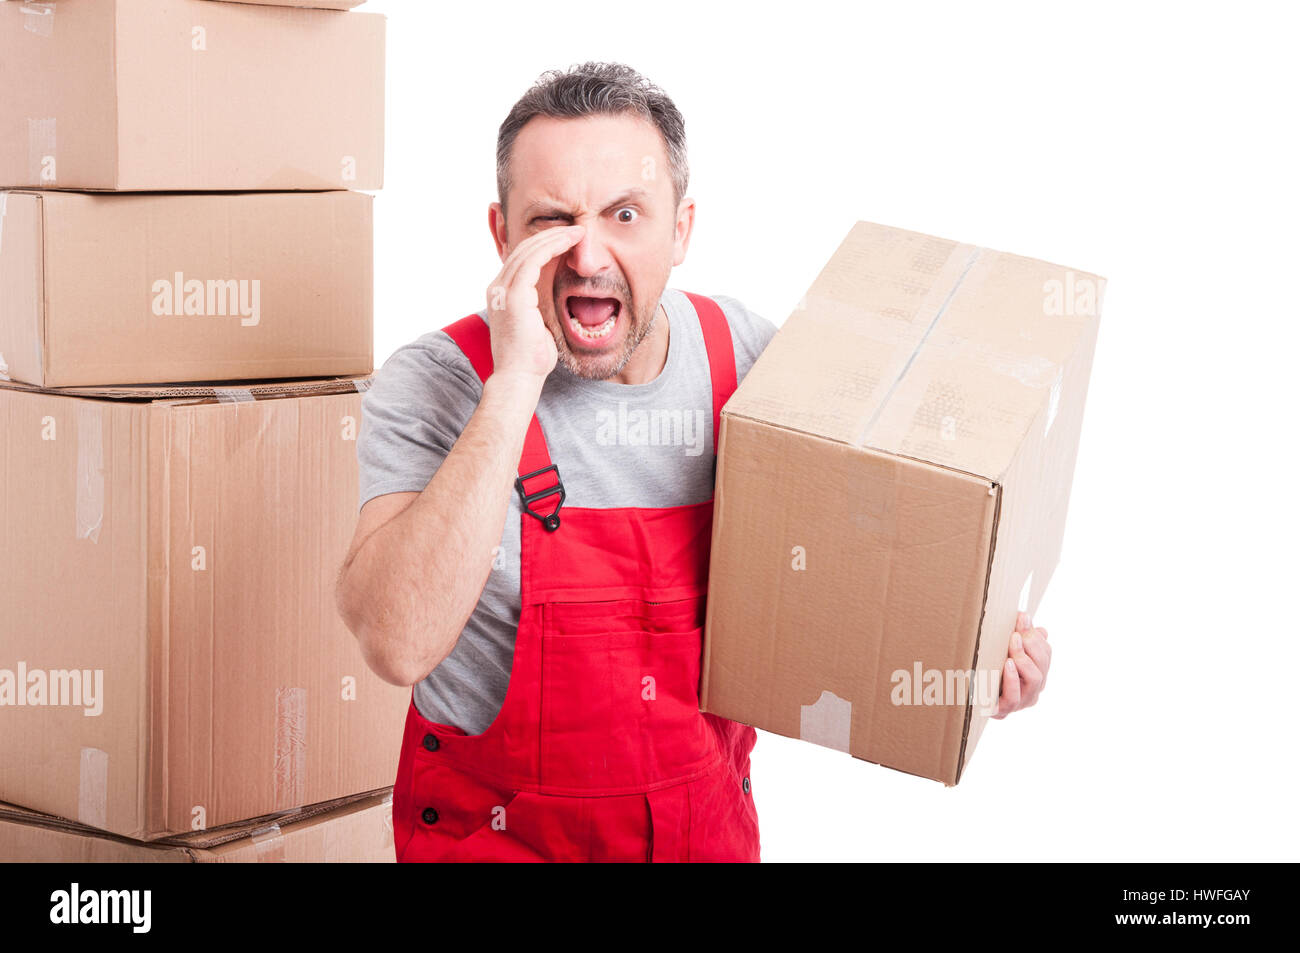 Portrait of mover man holding box and screaming loud looking very mad or angry isolated on white background - Stock Image